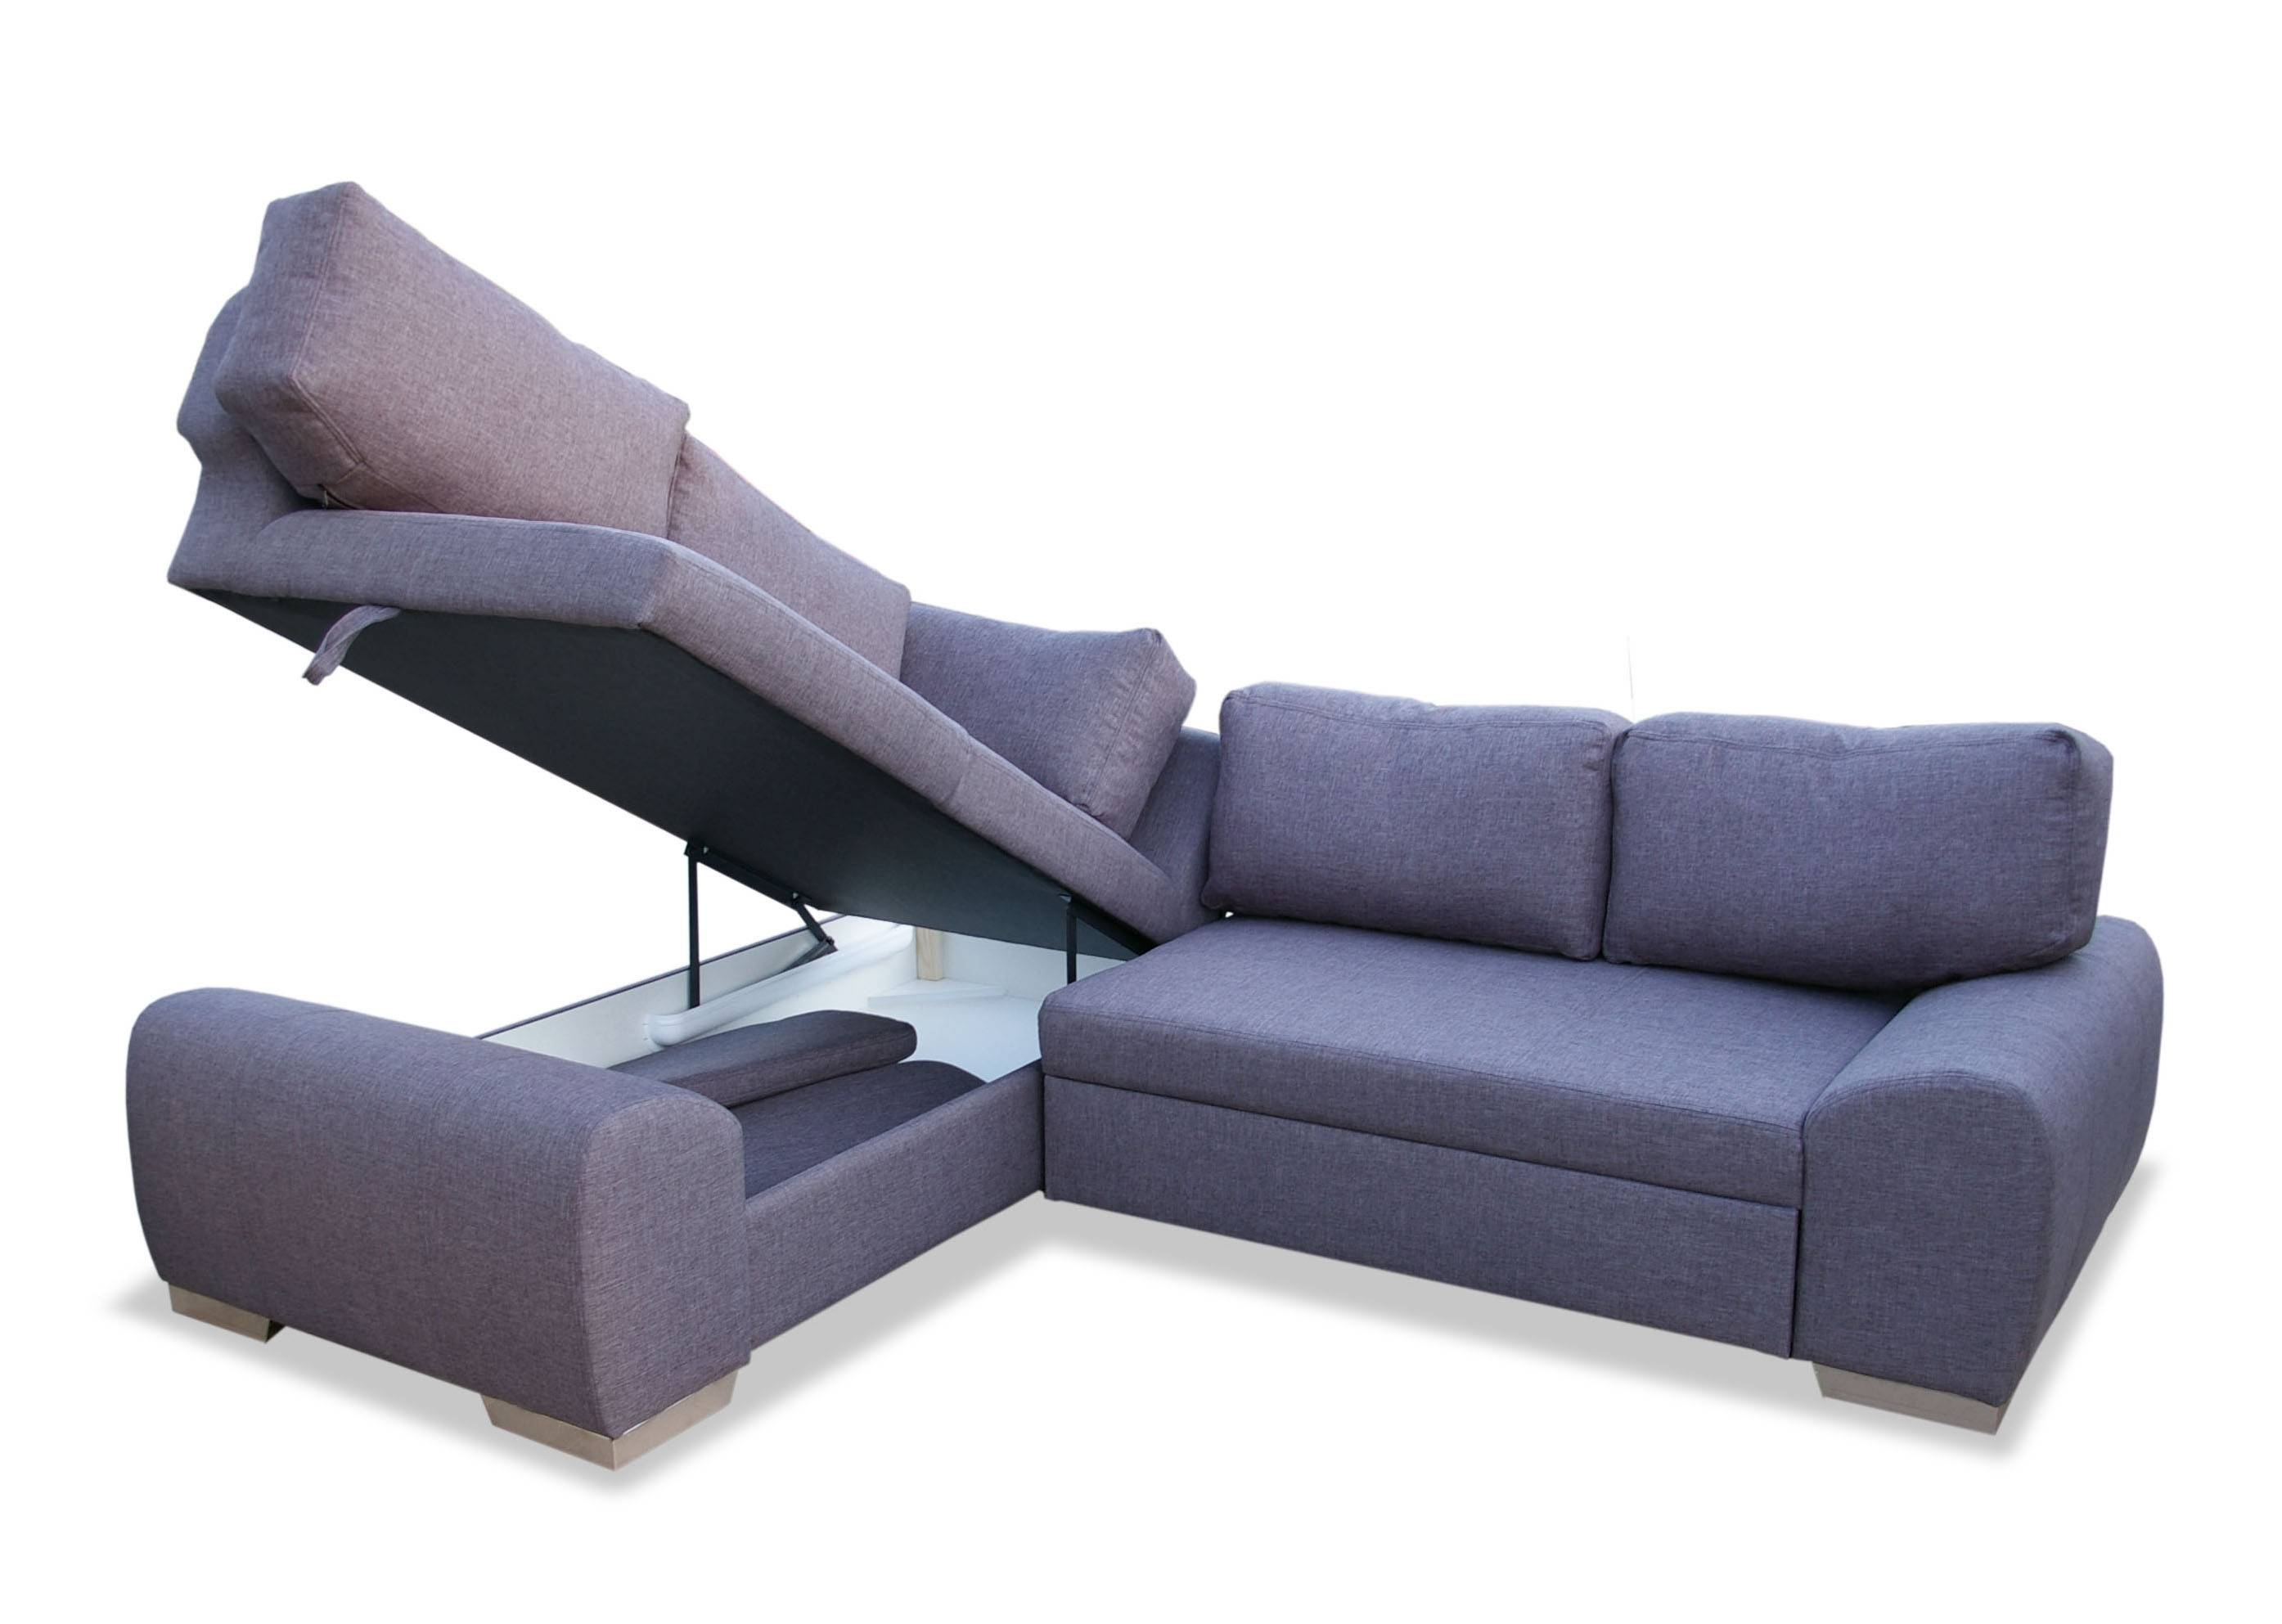 Milan Corner Sofa Bed With Storage Right Hand Grey - S3Net pertaining to Sectional Sofa With Storage (Image 12 of 25)